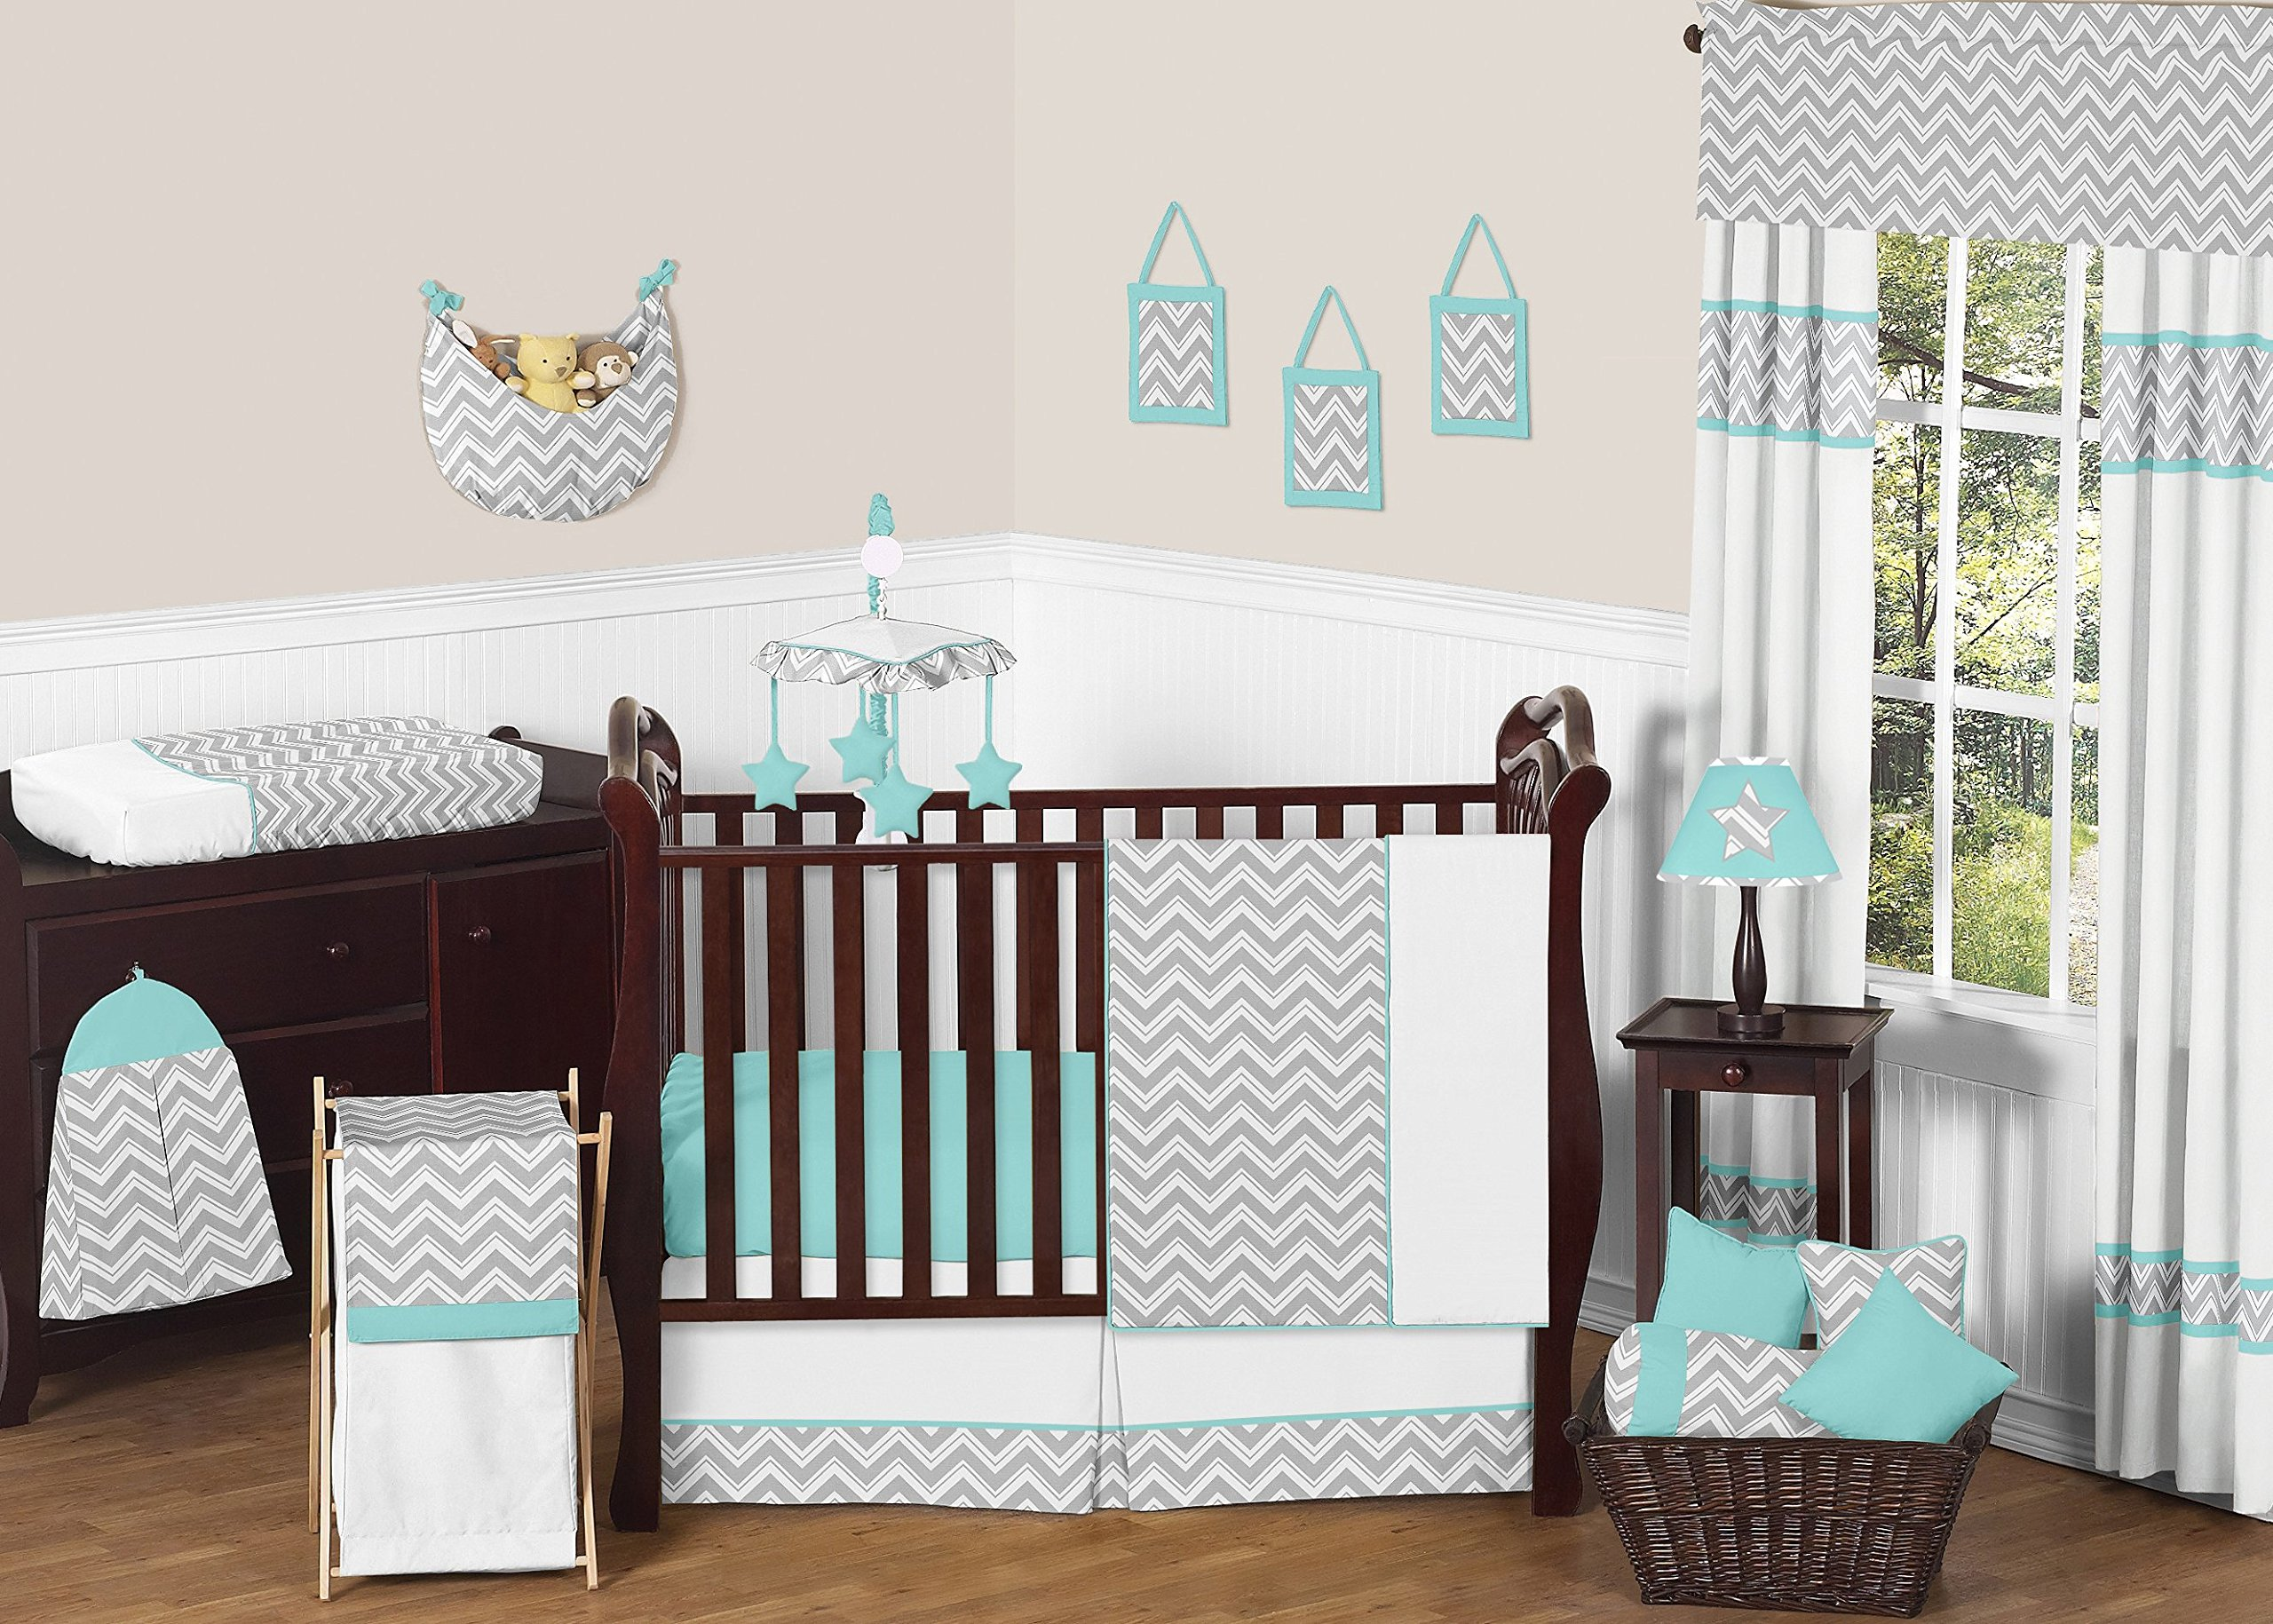 MalAk 3-Piece Crib Bedding Set for Baby Girl Pink Elephants Themed Designs for